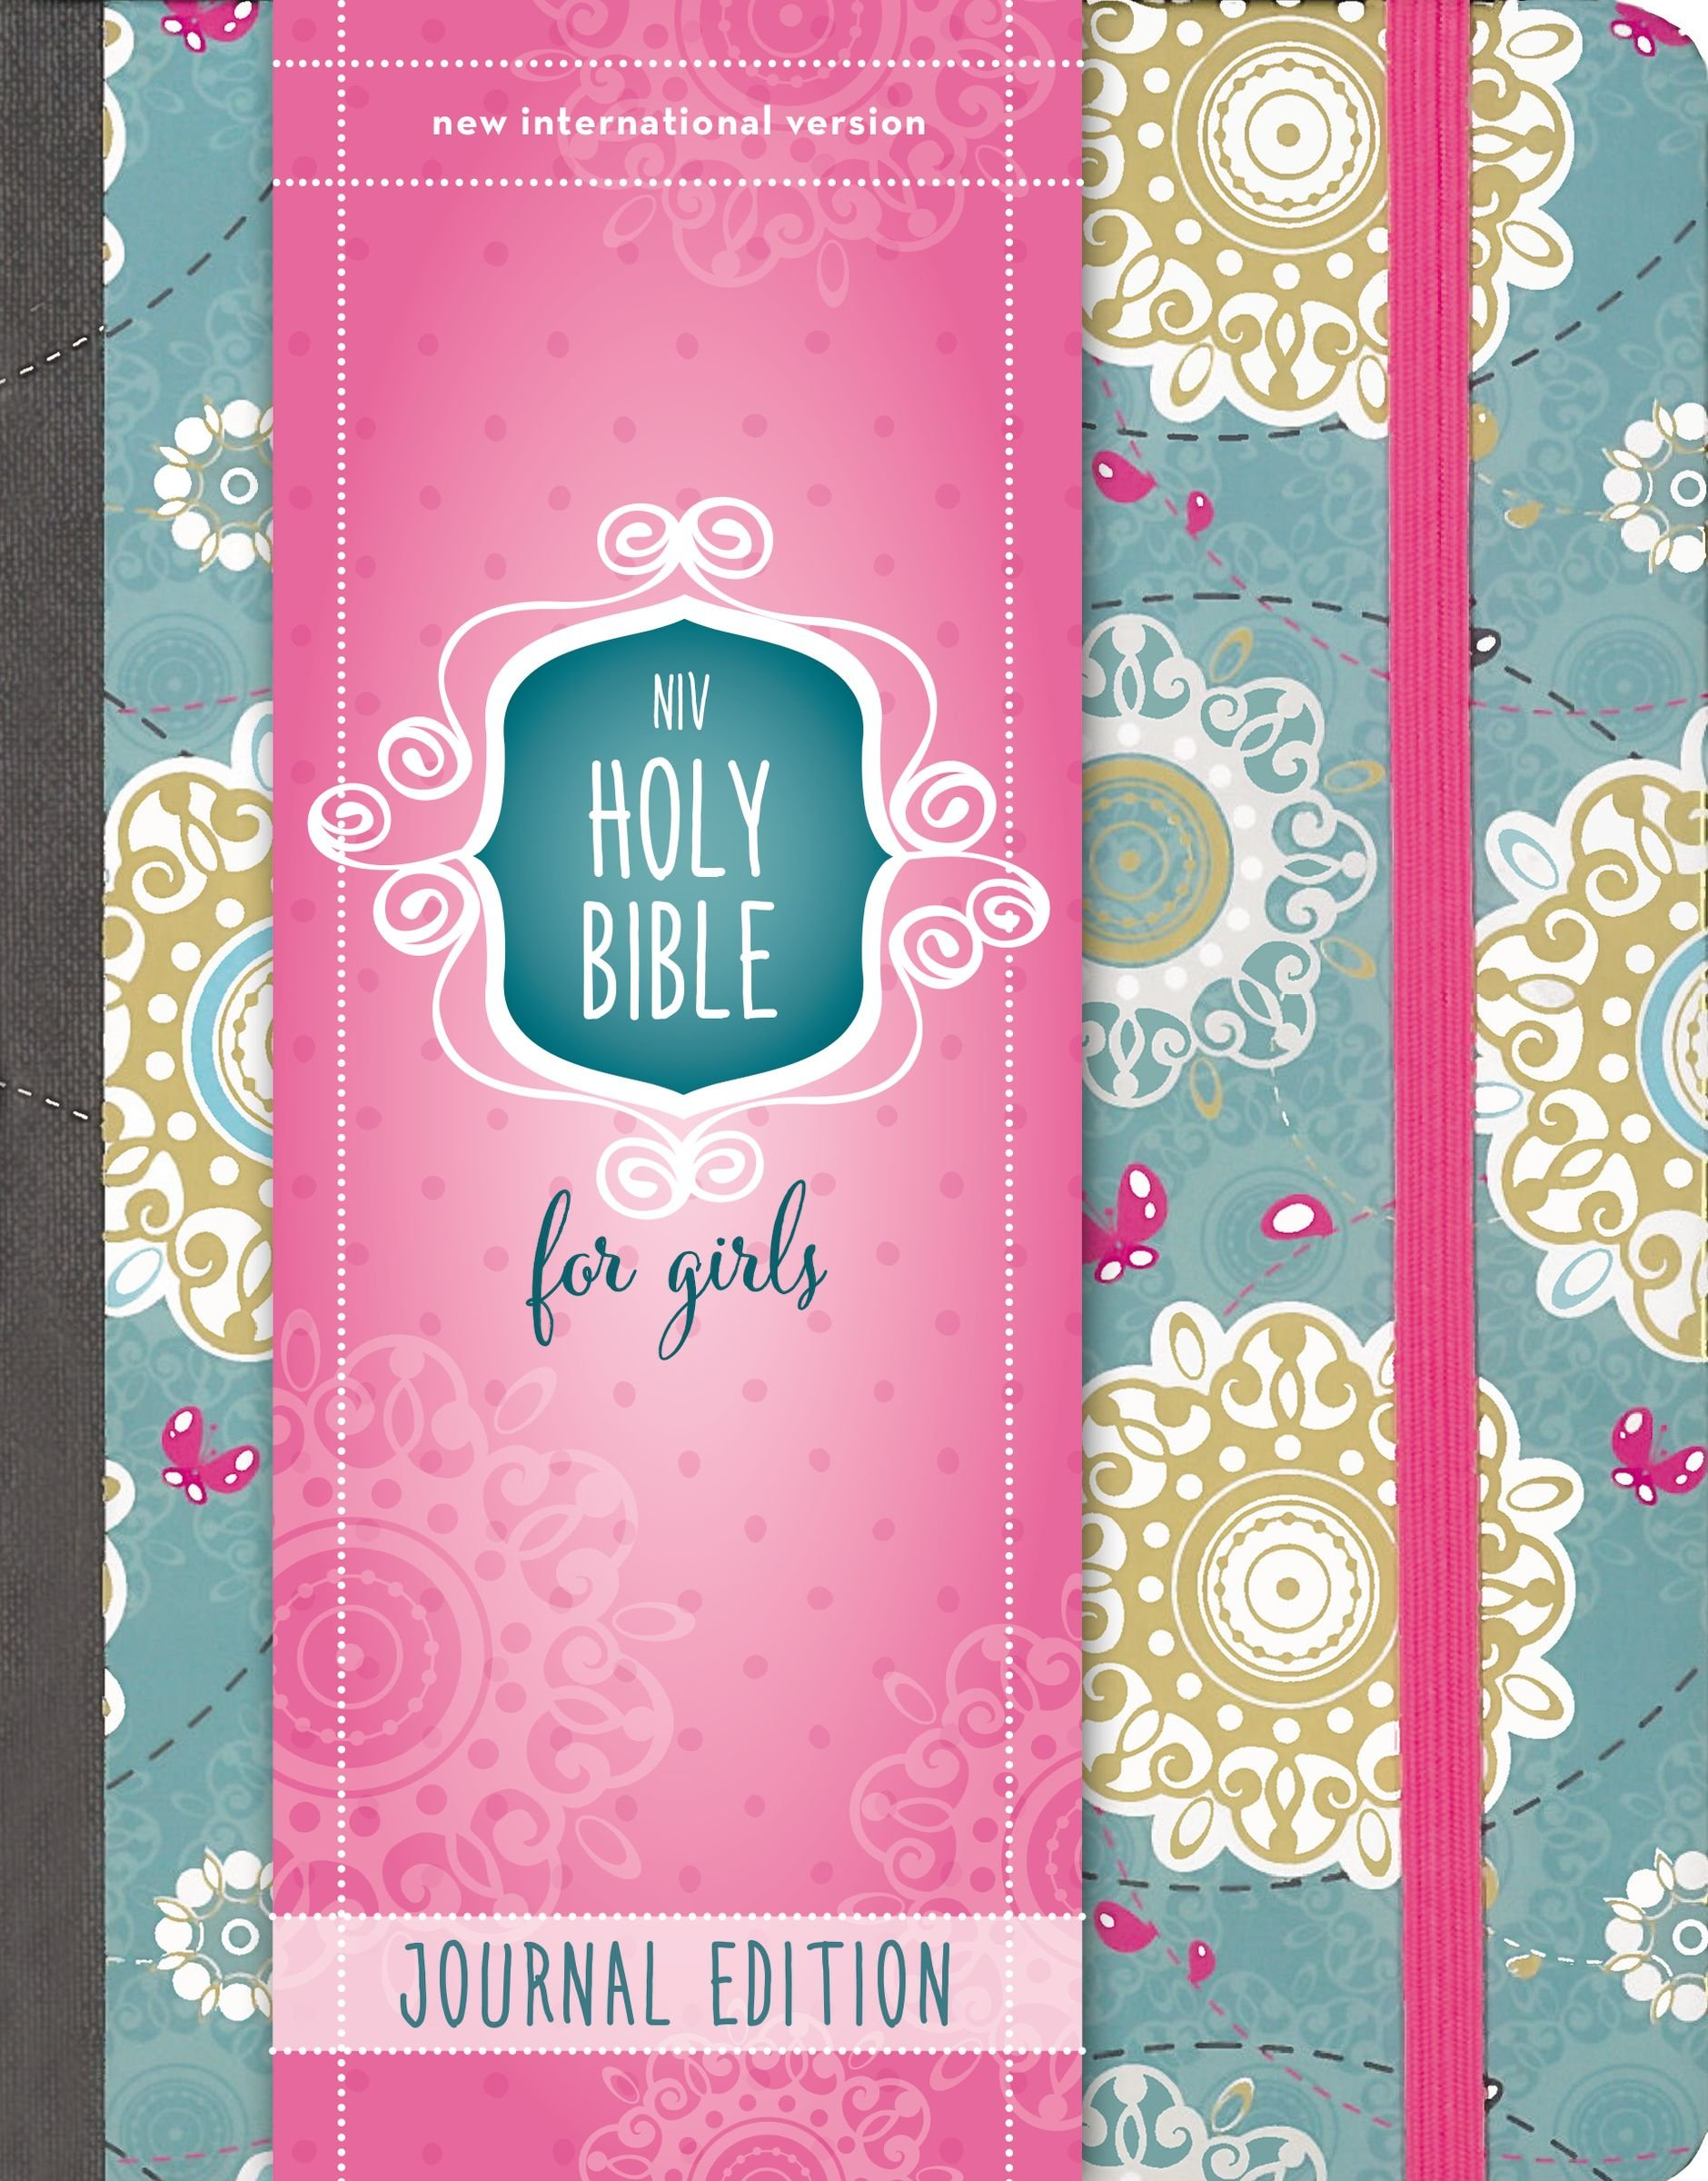 Review of NIV Holy Bible for Girls, Journal Edition ...